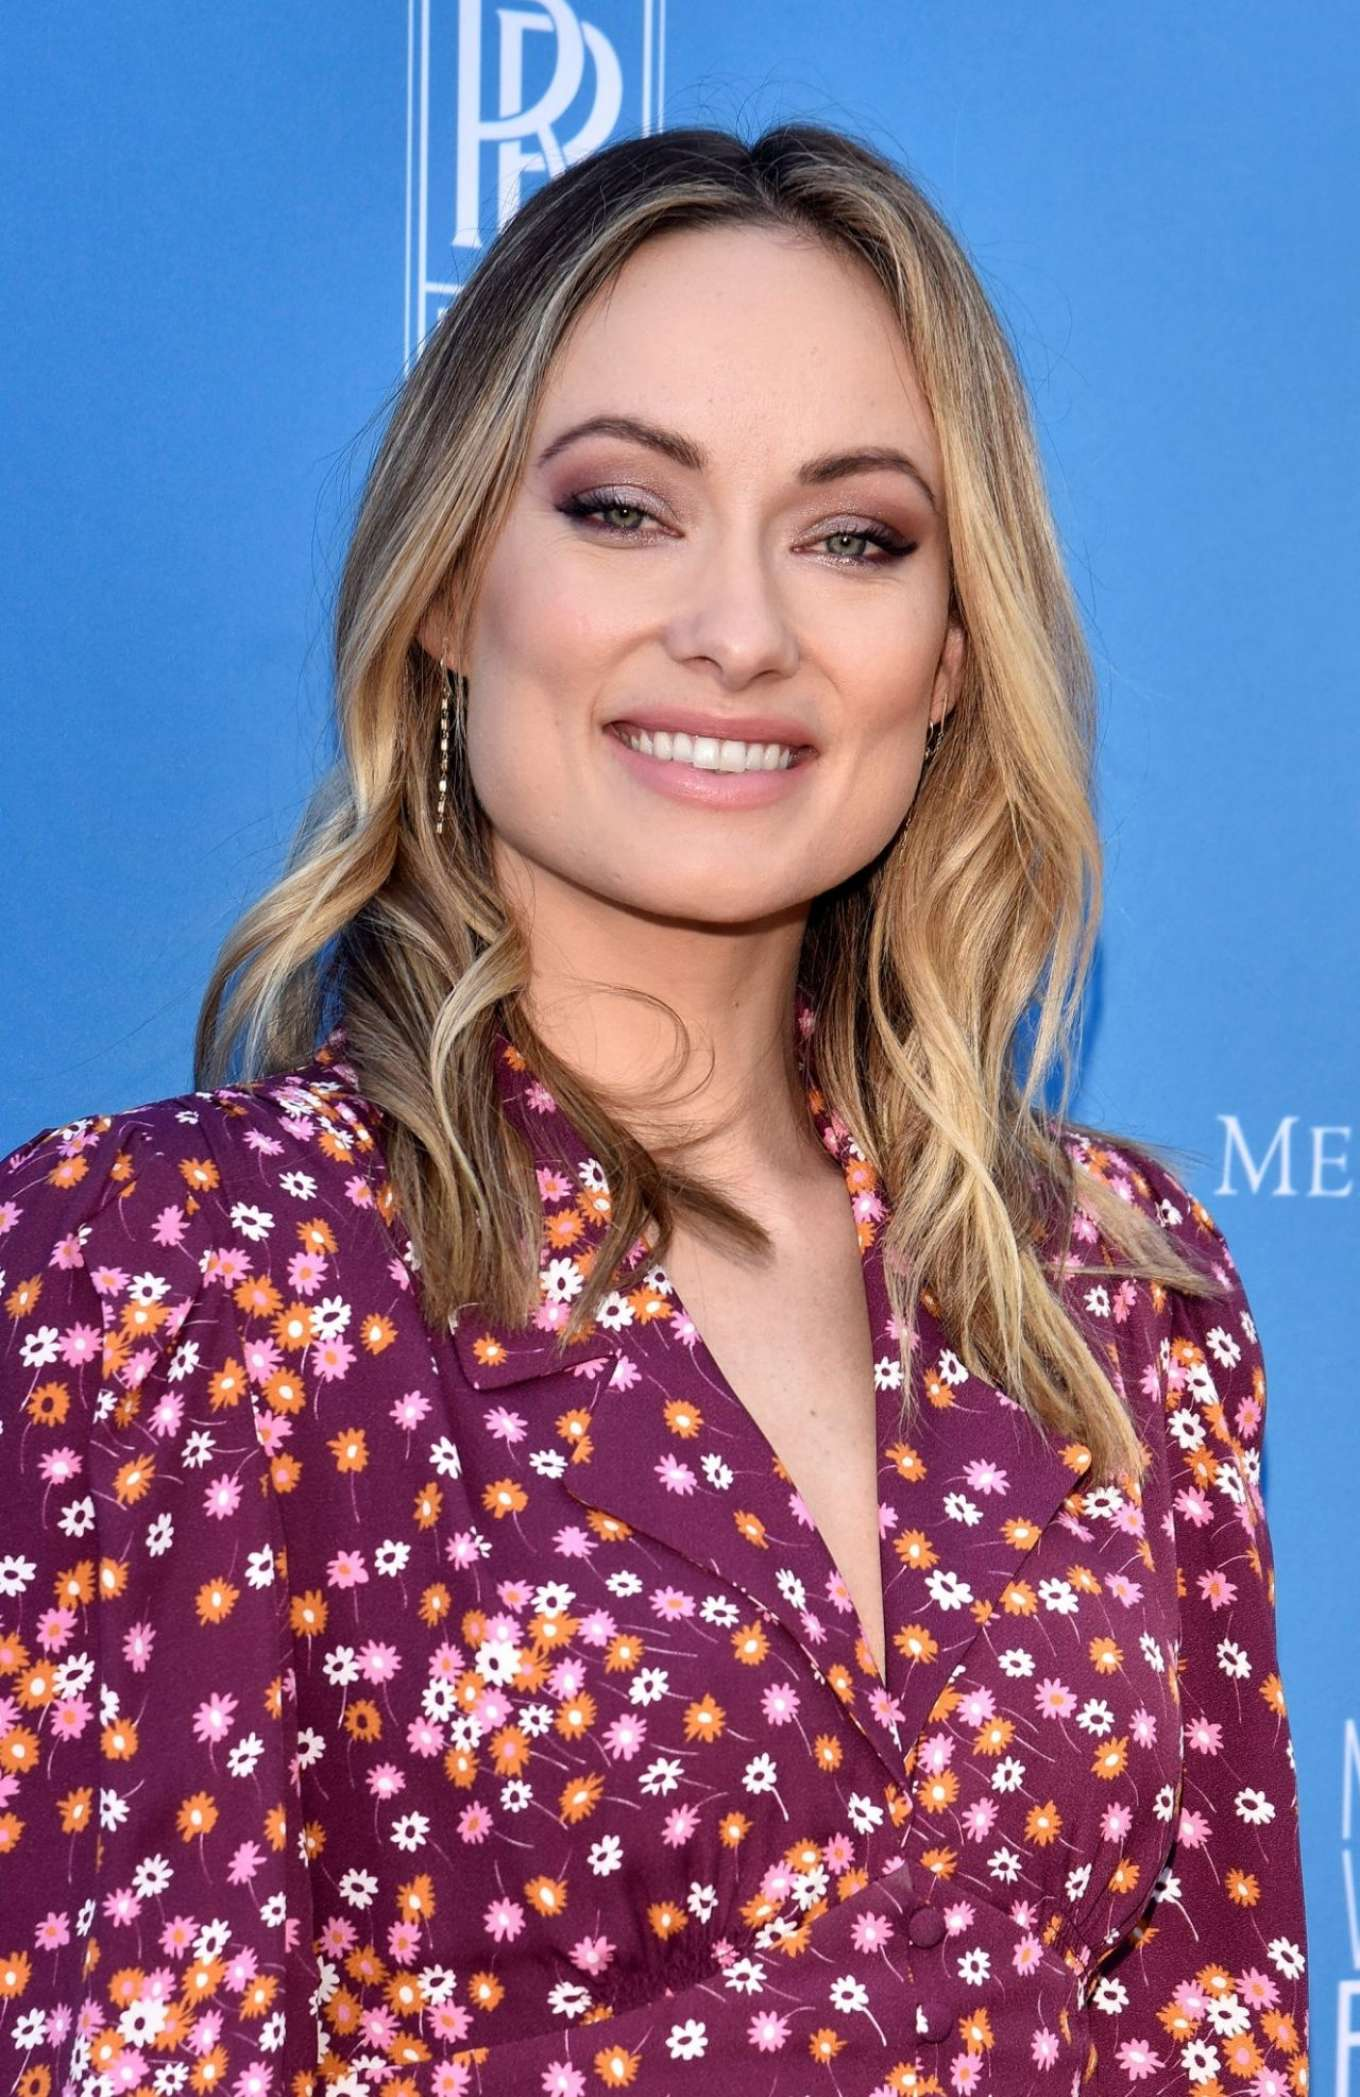 Olivia Wilde - A Tribute to Olivia Wilde at 2019 Napa Valley Film Festival